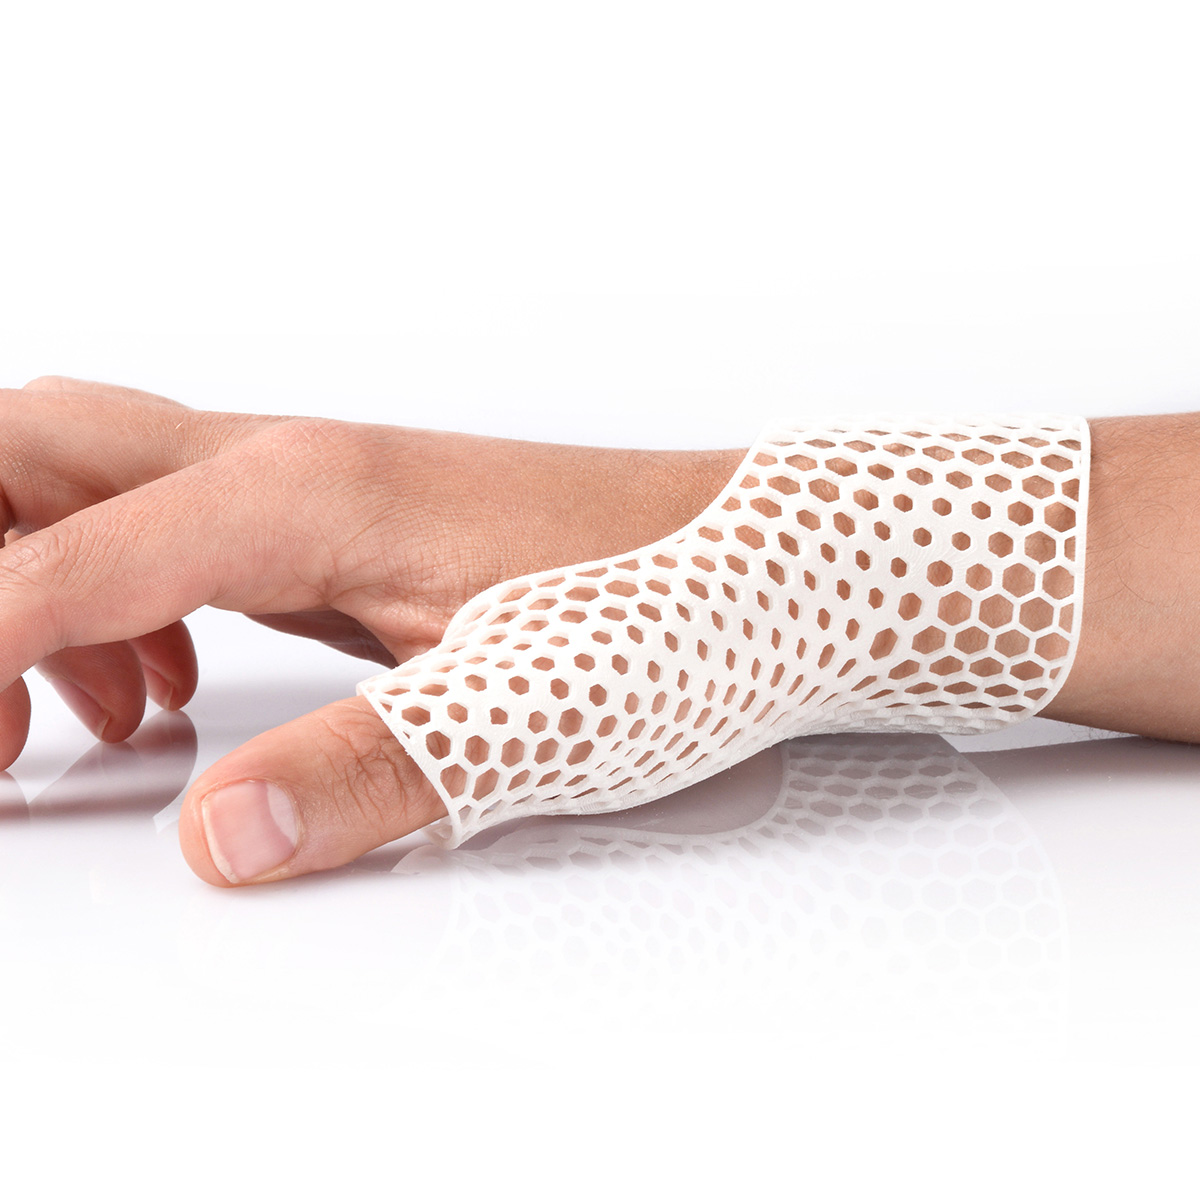 PA11 3D Printed Wrist Cast Demonstrated on Hand